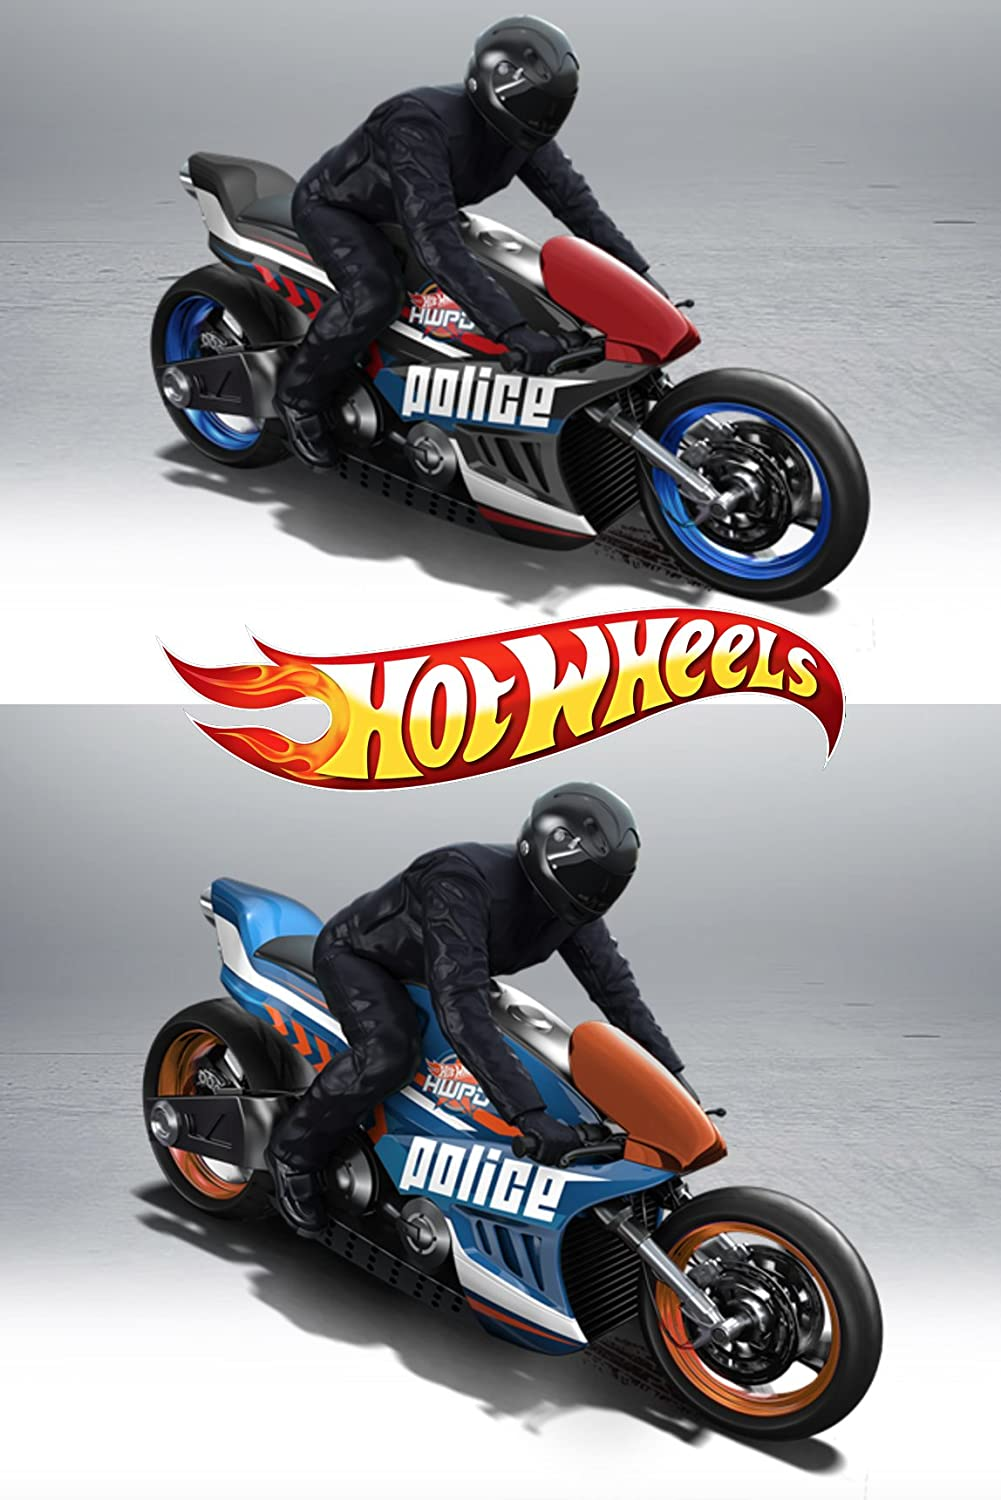 Hw hot wheels 2015 hw city 48 250 canyon carver police motorcycle - Amazon Com Police Motorcycles 2015 Hot Wheels Canyon Carver Cycles 48 Blue Black In Protective Cases Toys Games